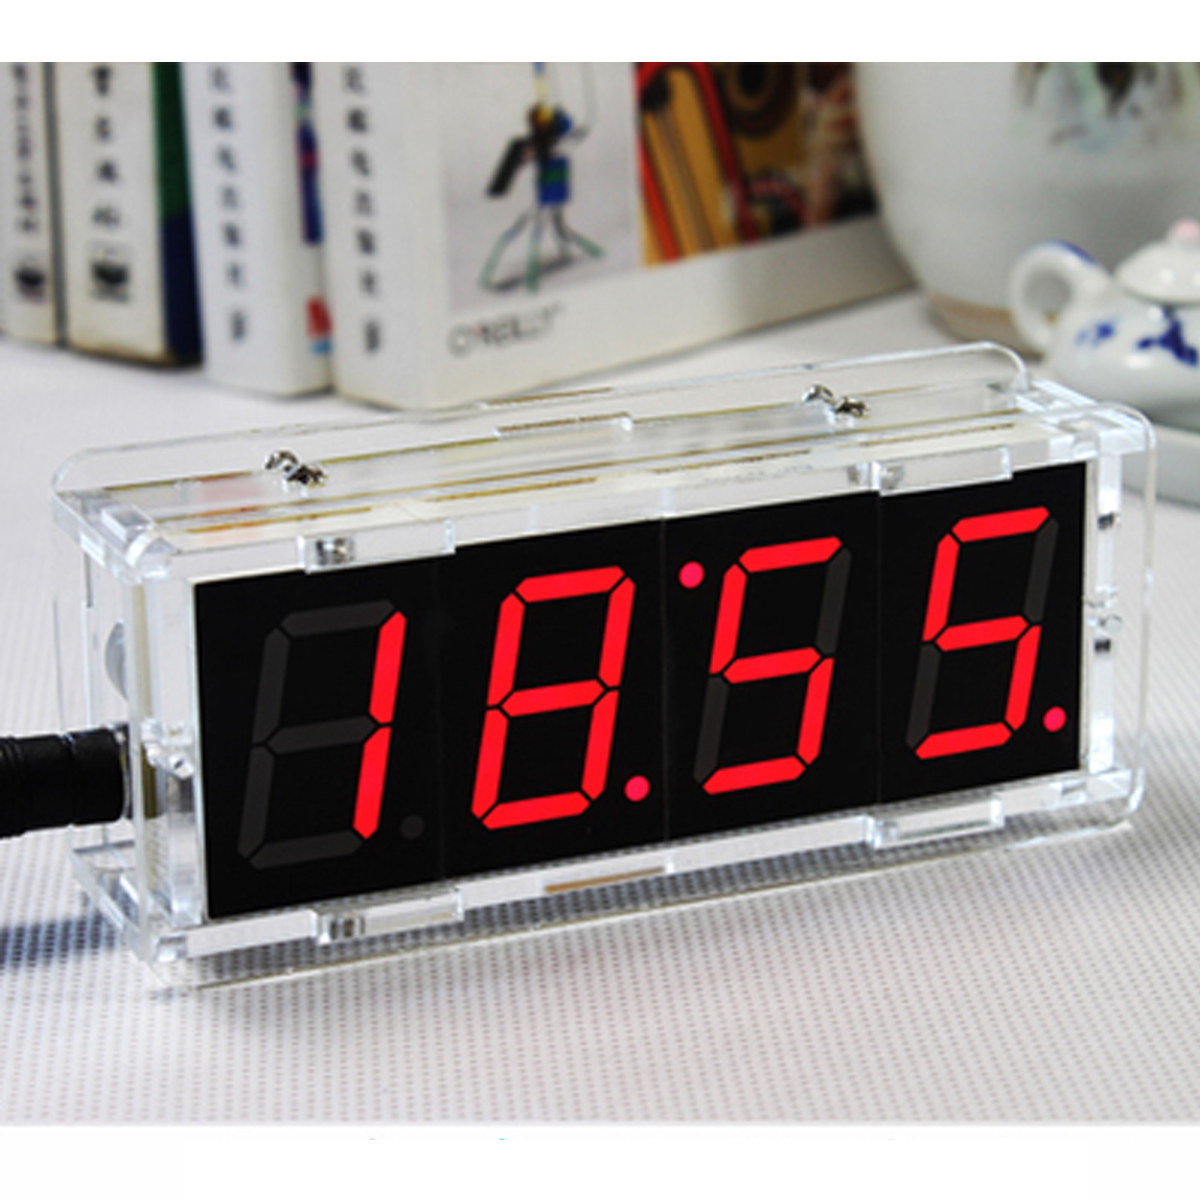 Small Led Alarm Clock Diy Digital Led Electronic Microcontroller Clock Kit Large